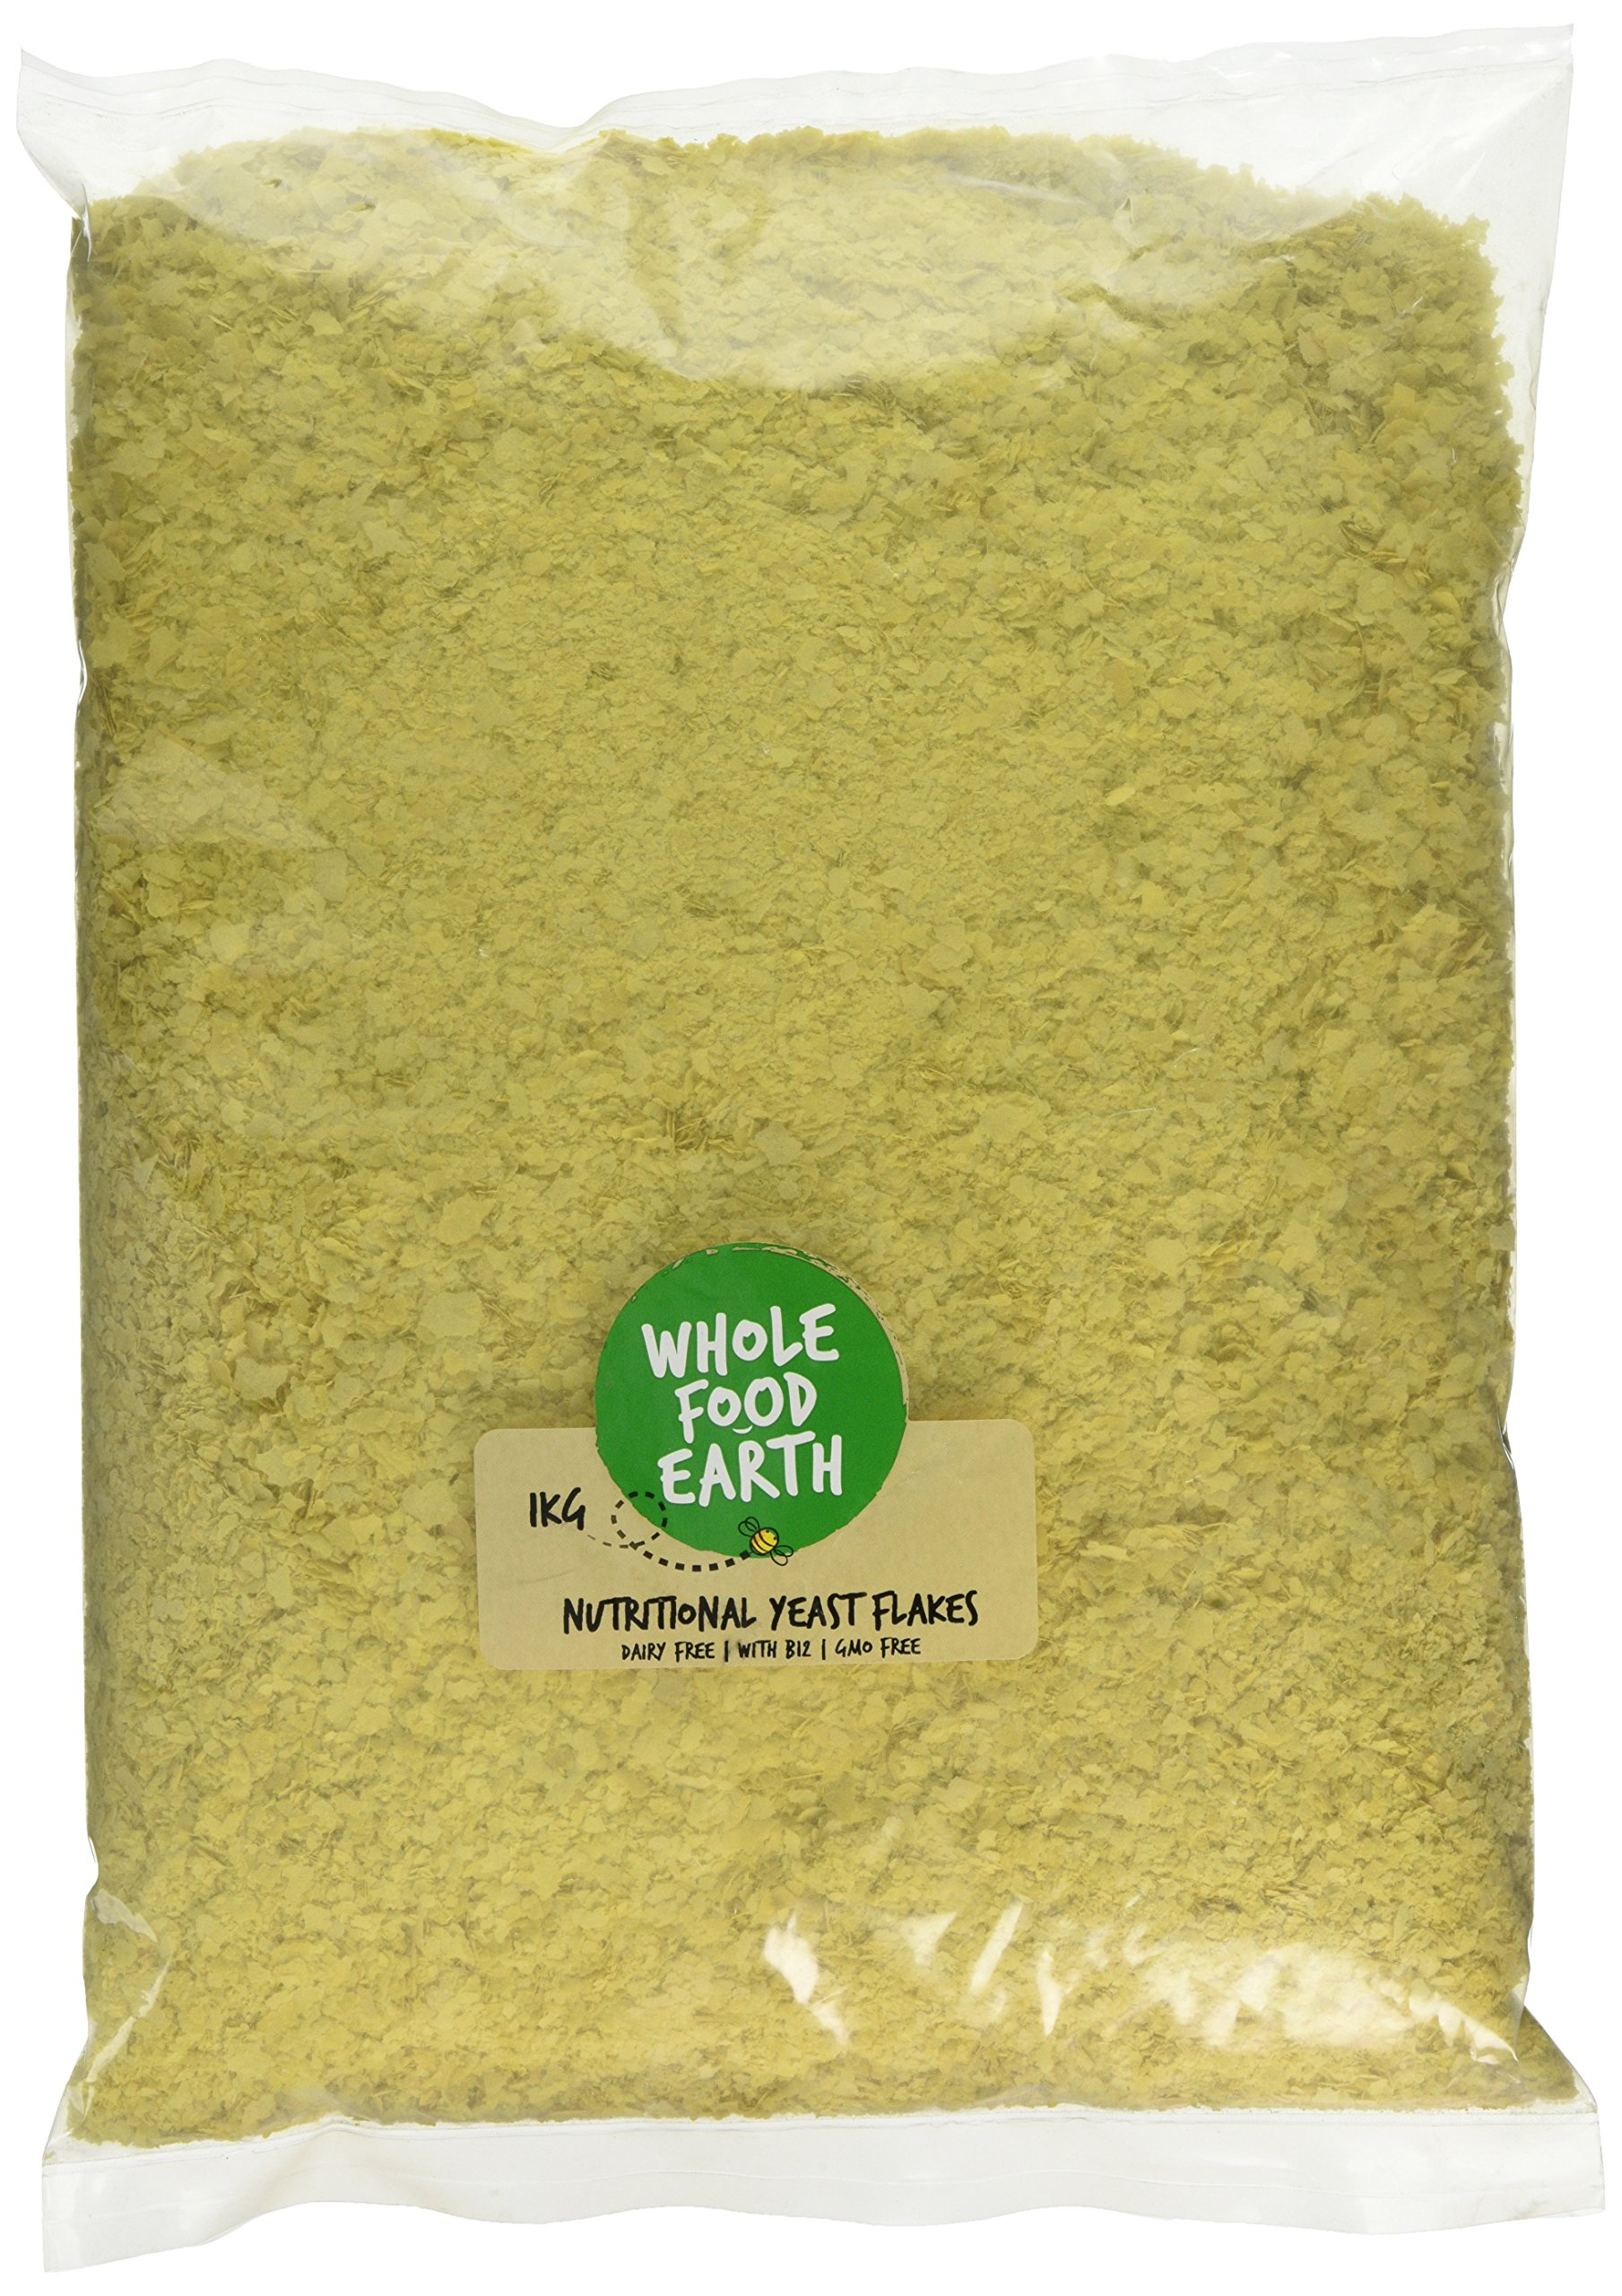 Wholefood Earth Nutritional Yeast Flakes, 1 kg